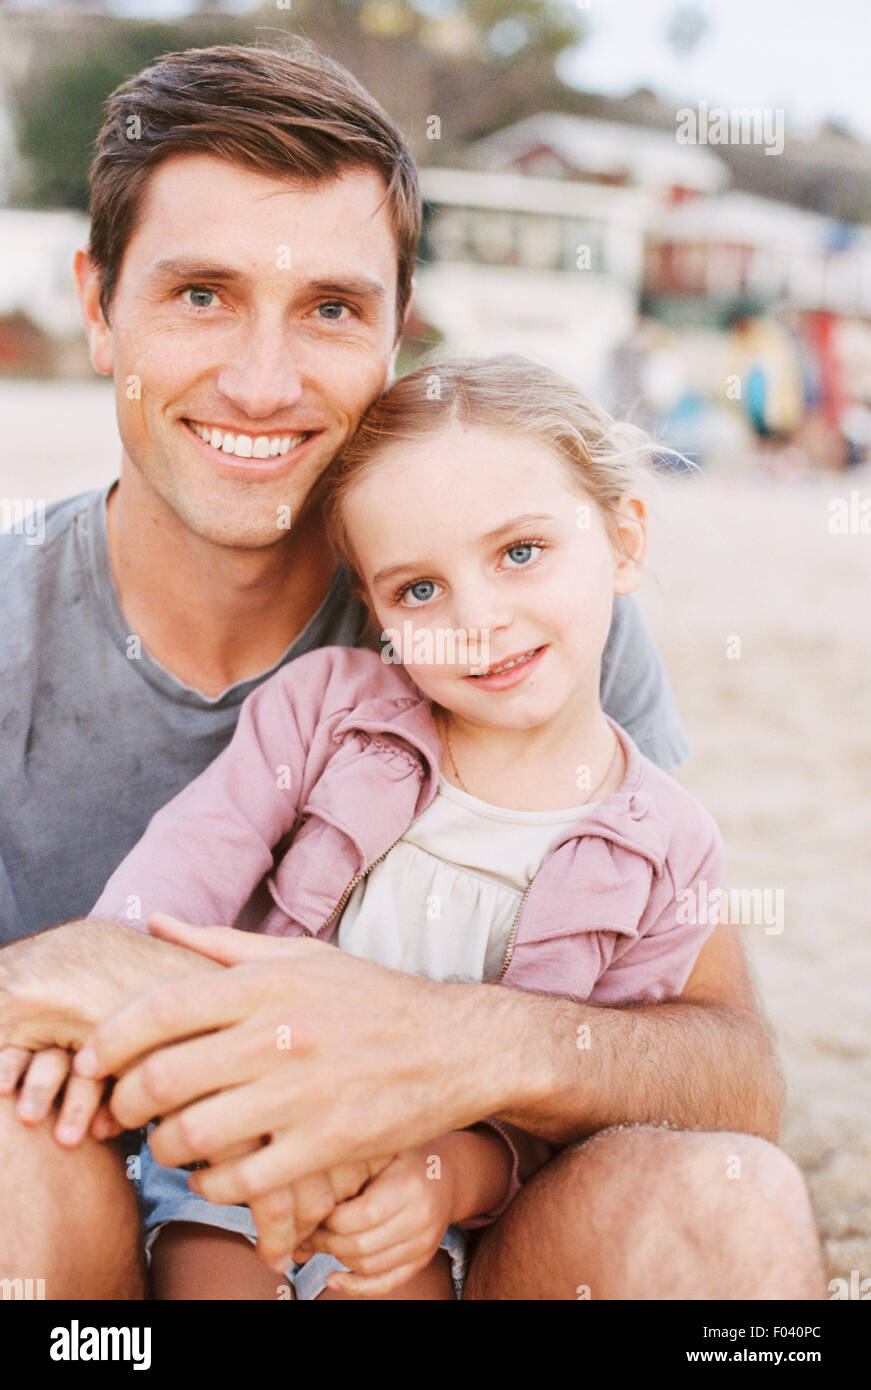 Young girl sitting on her father's lap, looking at camera, smiling. - Stock Image